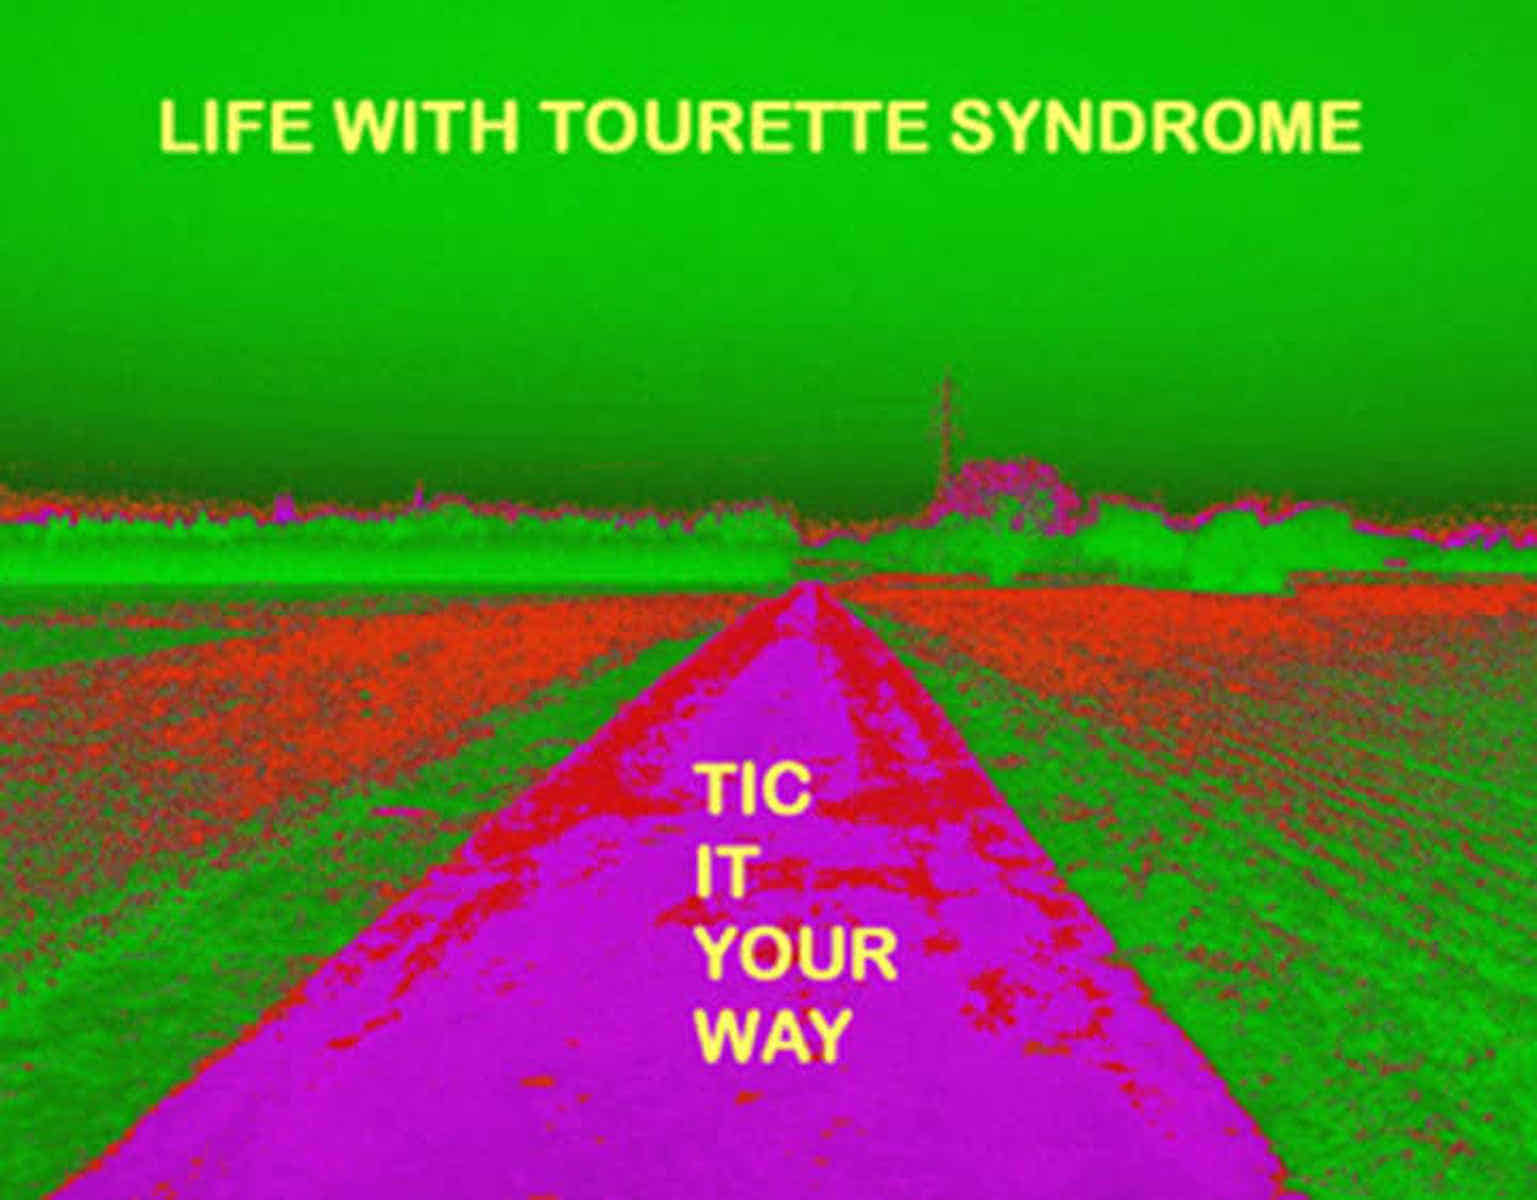 an analysis of the life with a tourette syndrome Tourette syndrome (ts), which first  i often think of my tourette's as a positive aspect of my life,  for more in depth analysis of the use of cam.